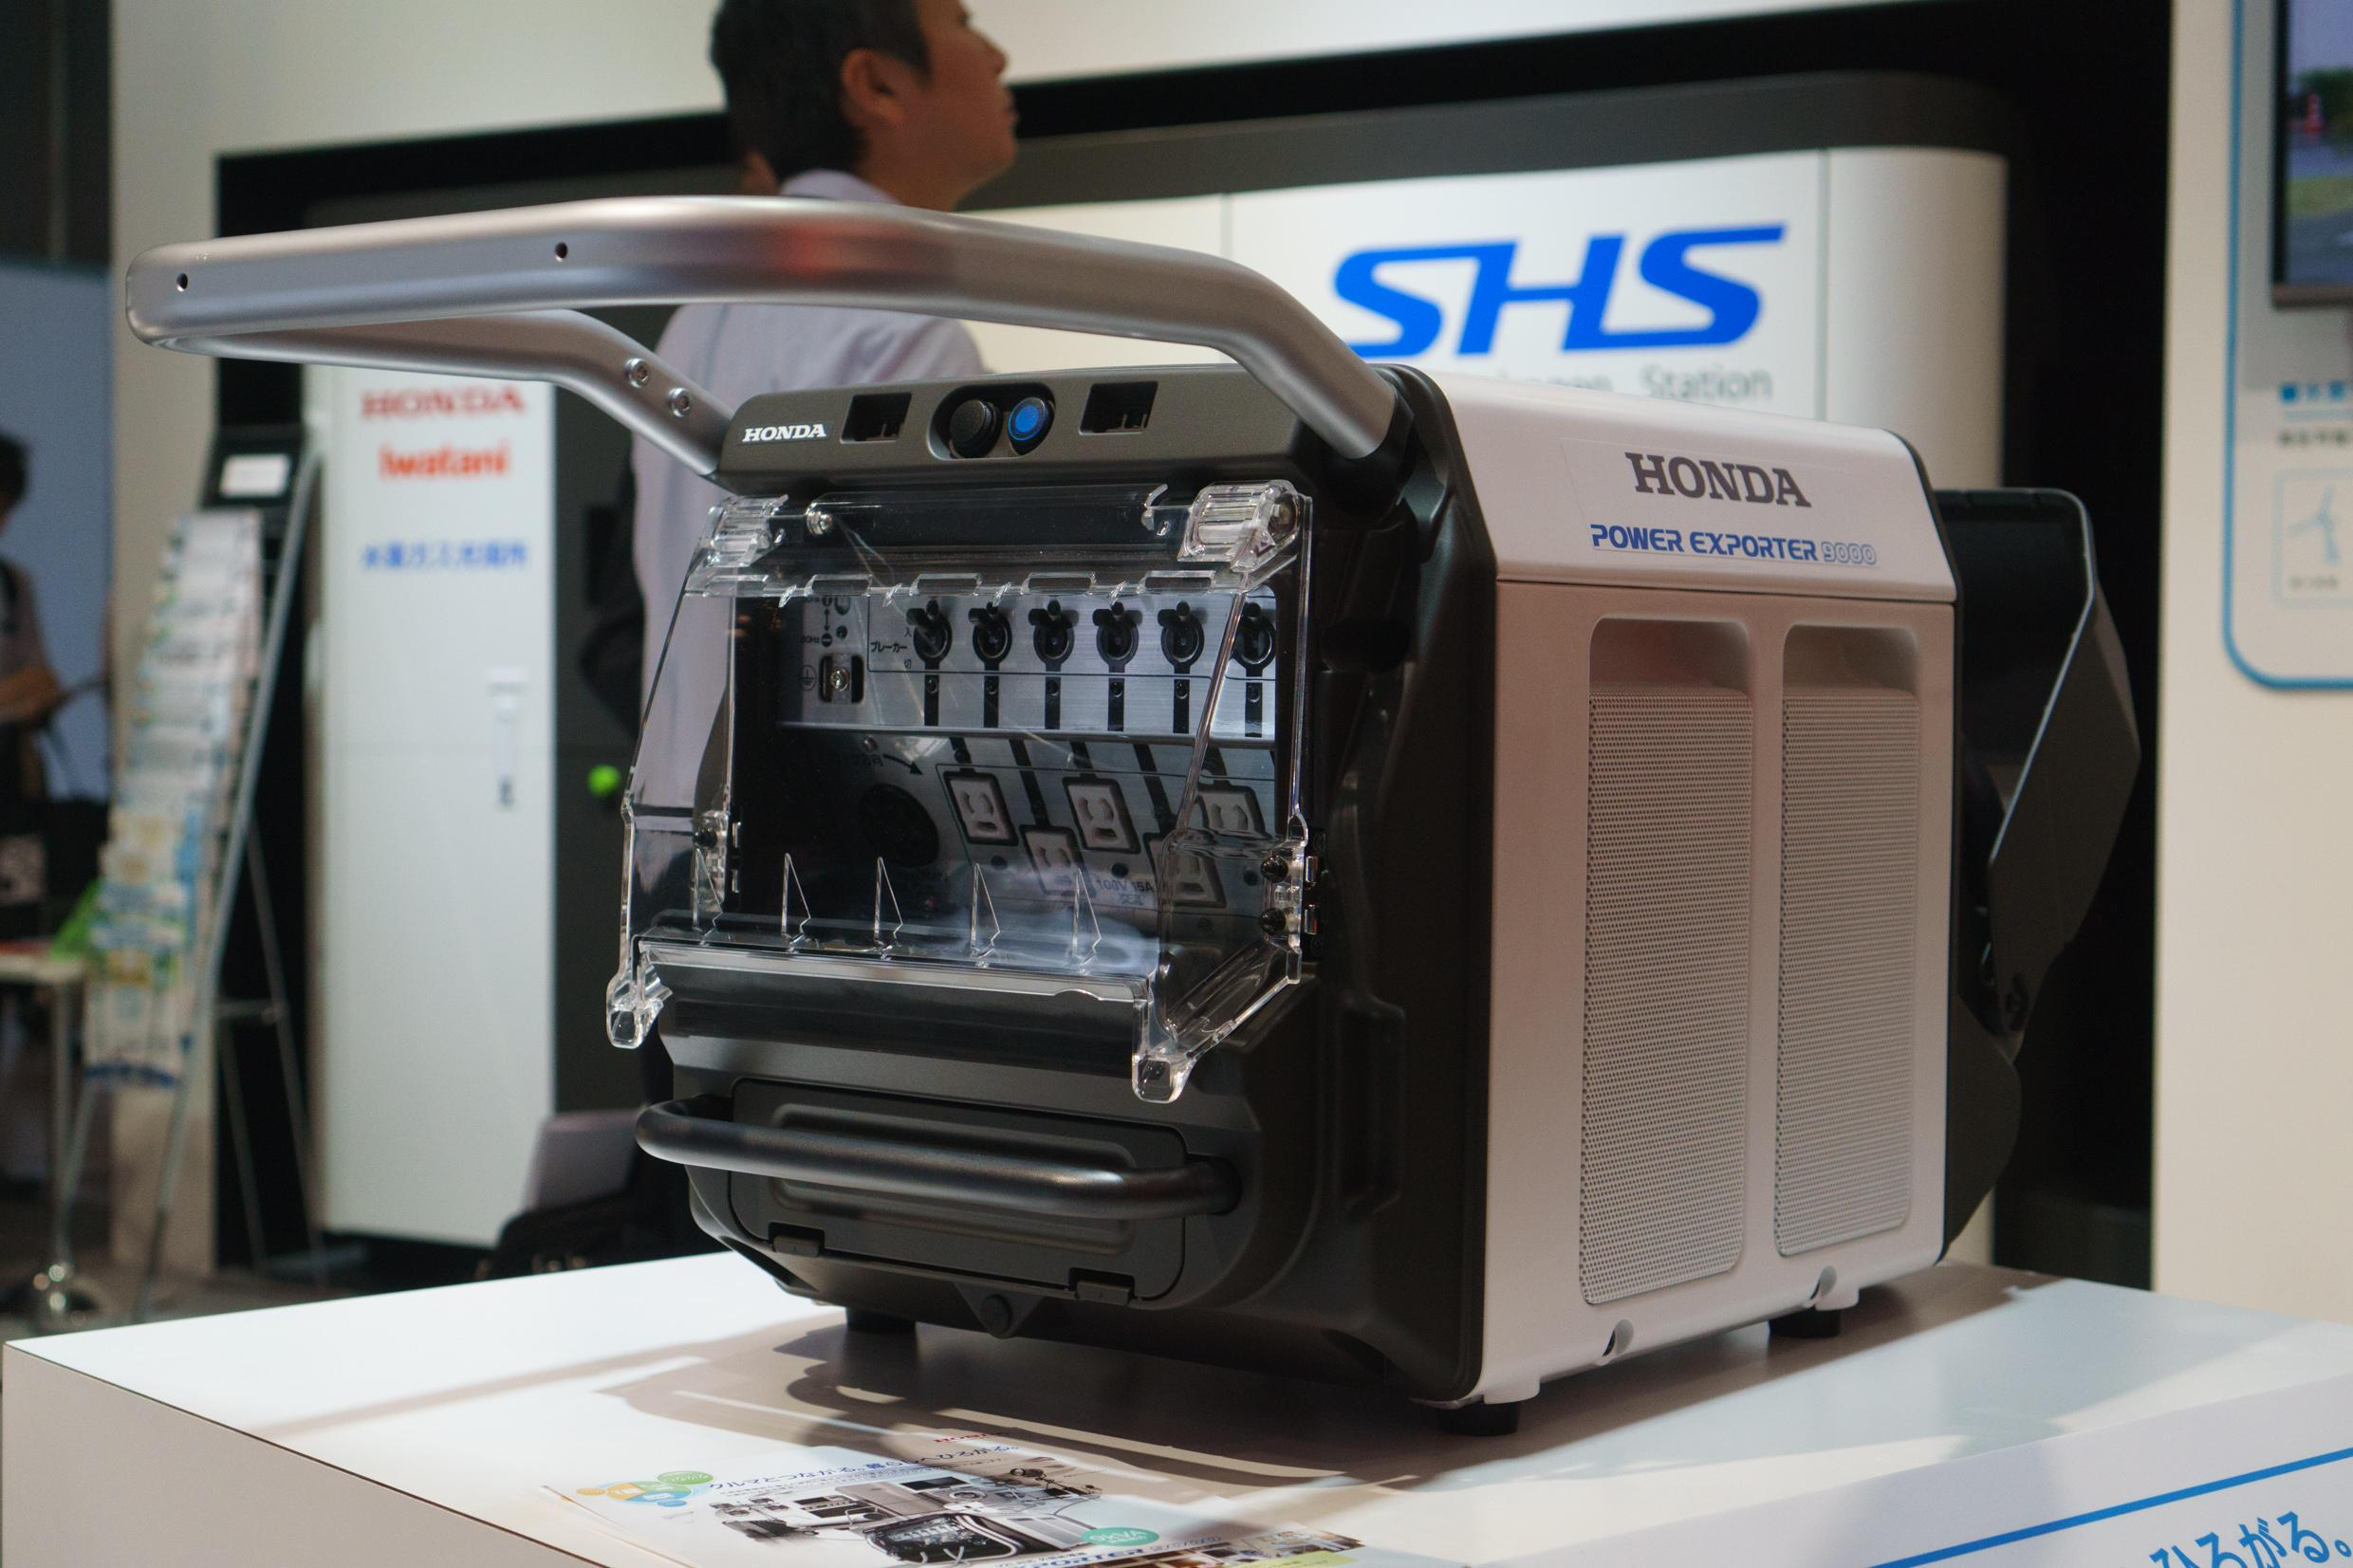 Honda's Power Exporter 9000 turns your electric car into the ultimate portable generator